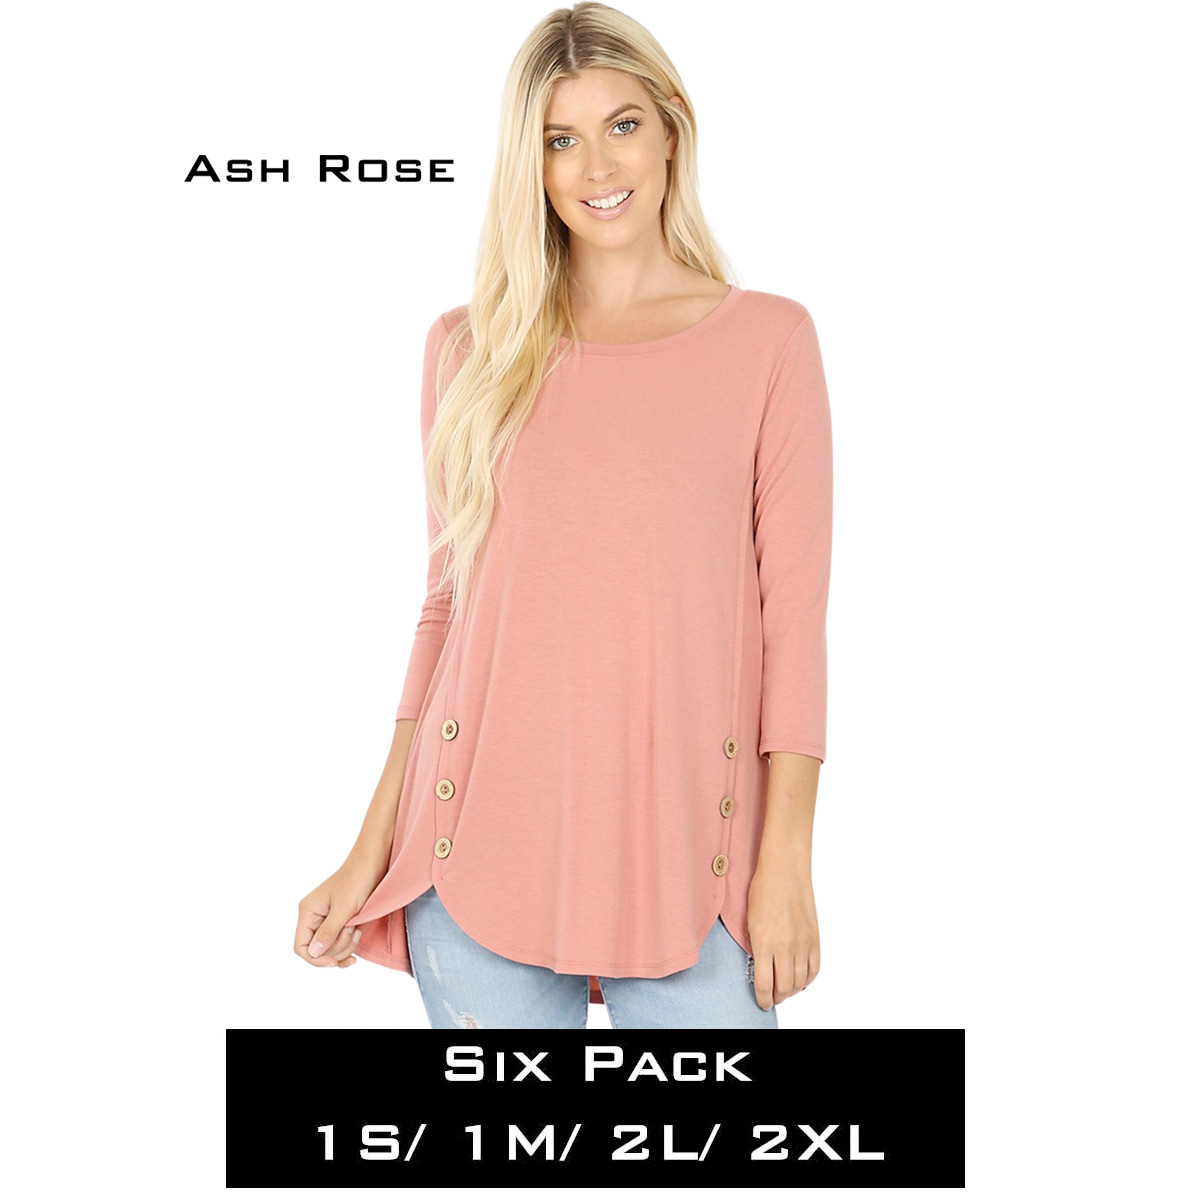 ASH ROSE (SIX PACK) 3/4 Sleeve Side Wood Buttons Top 2032(1S,1M,2L,2XL)